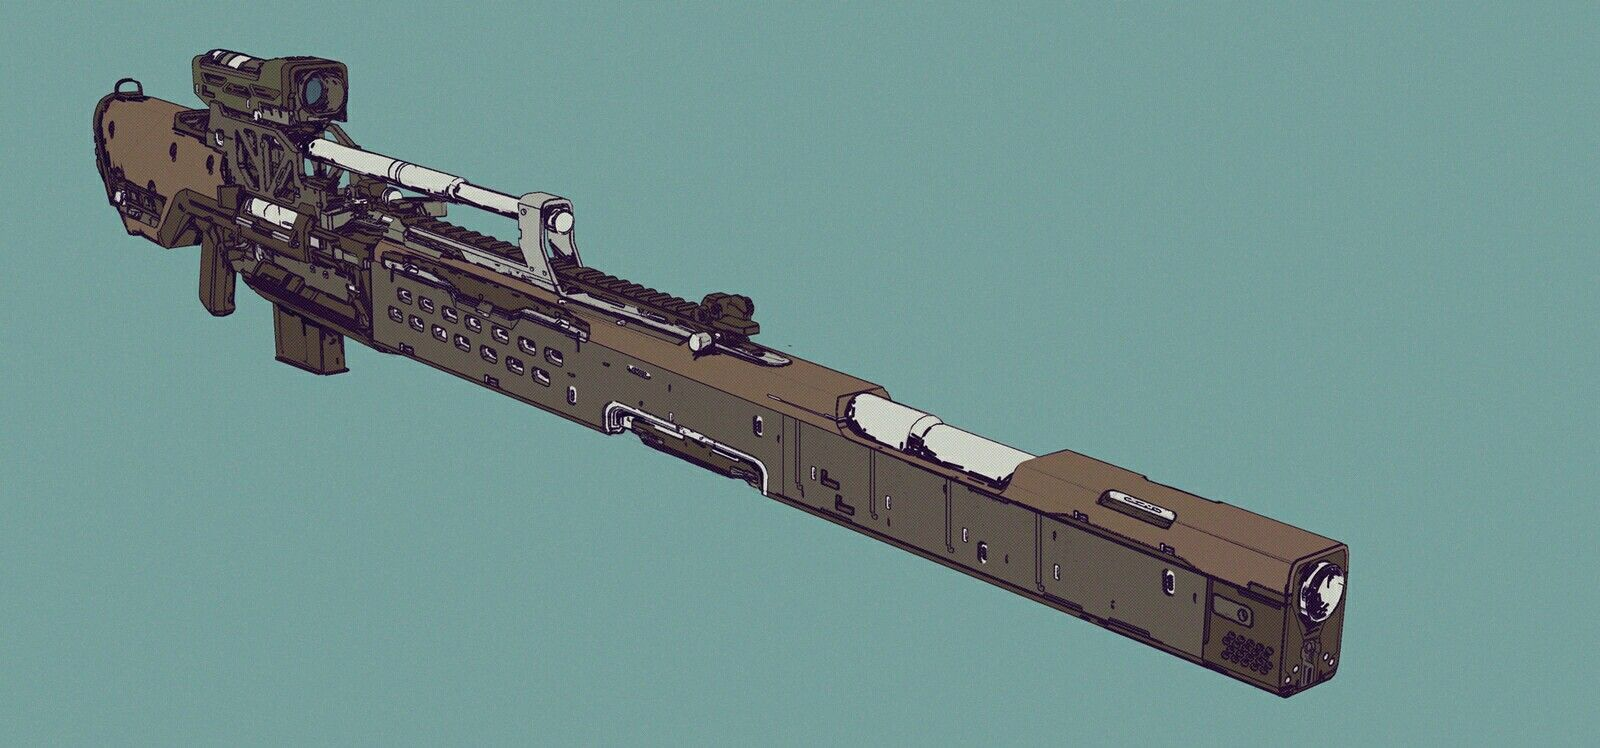 Gun Run 12 https://www.artstation.com/p/m0z4y Elijah McNeal Concept Artist; Contact - mcneal@emcnealdesign.com -- Share via Artstation Android App, Artstation © 2016